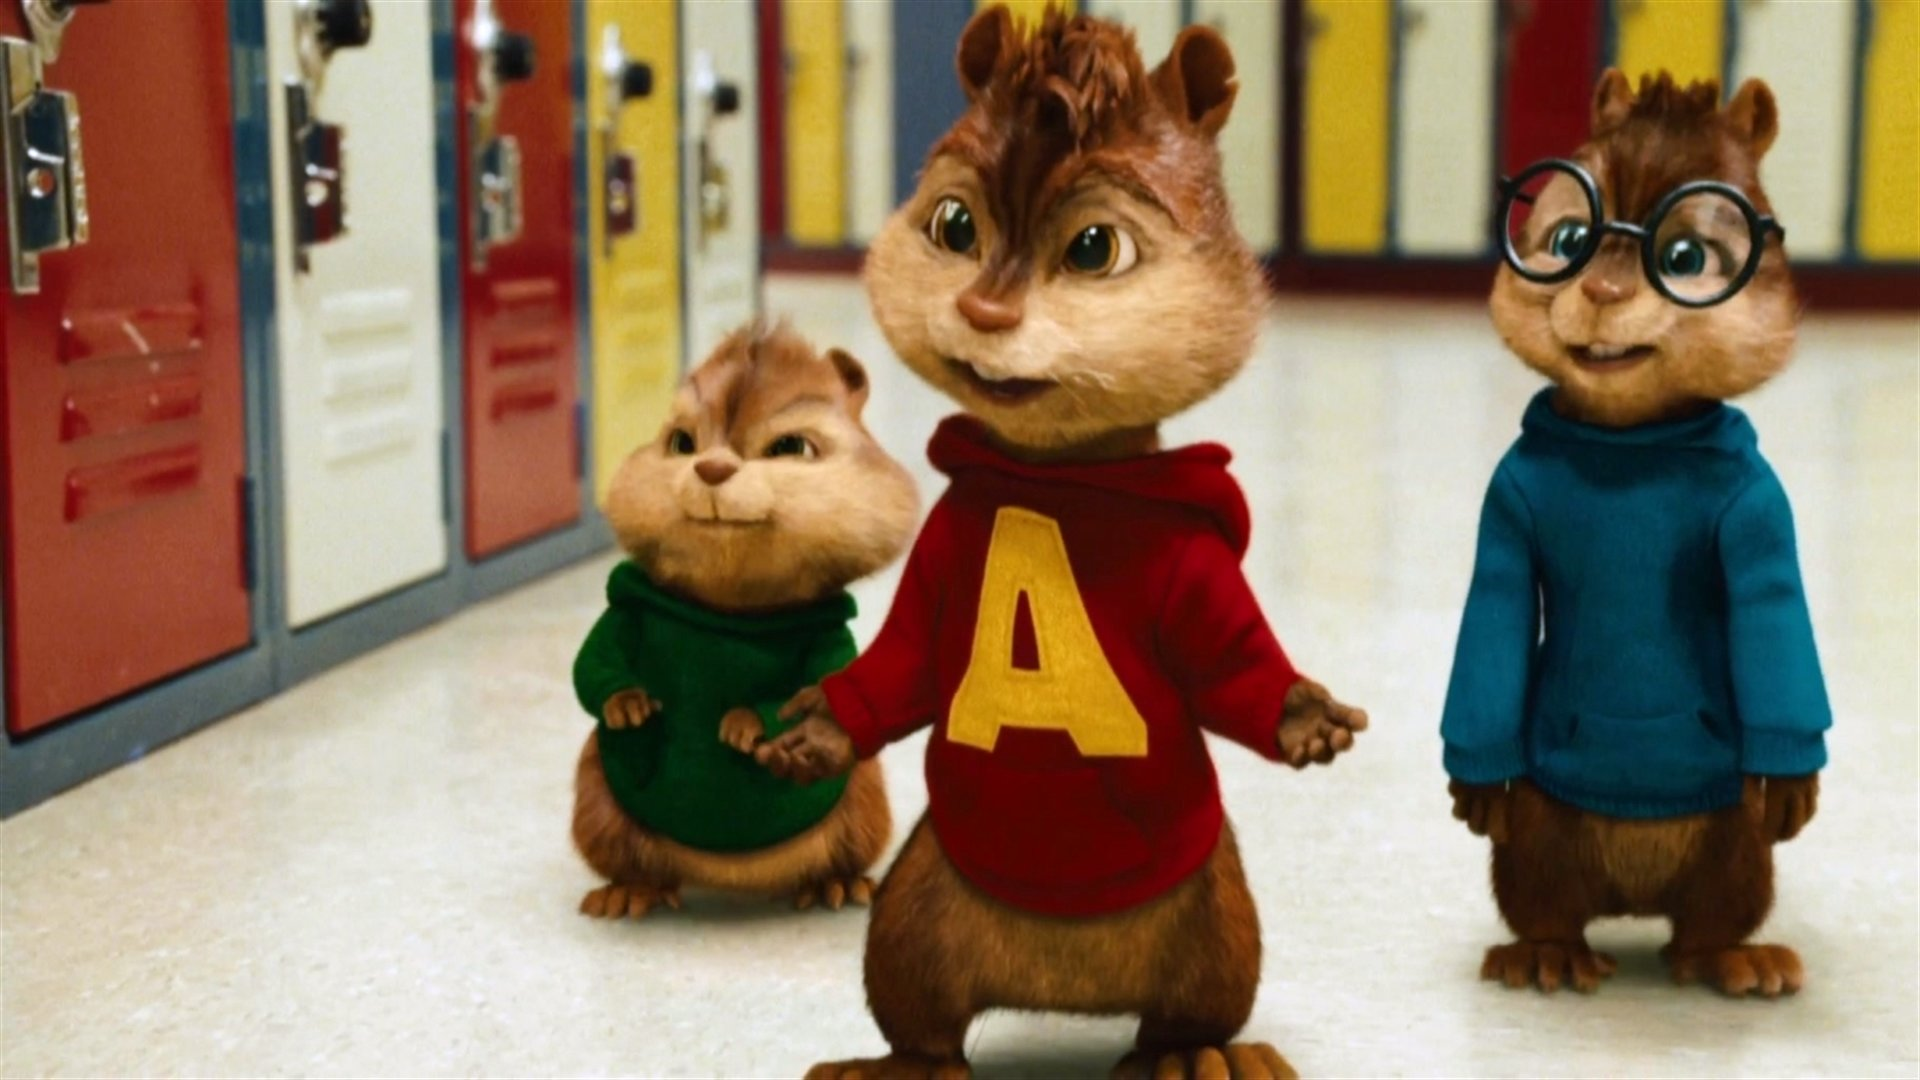 Alvin and the Chipmunks go to school in Alvin and the Chipmunks: The Squeakquel (2009)